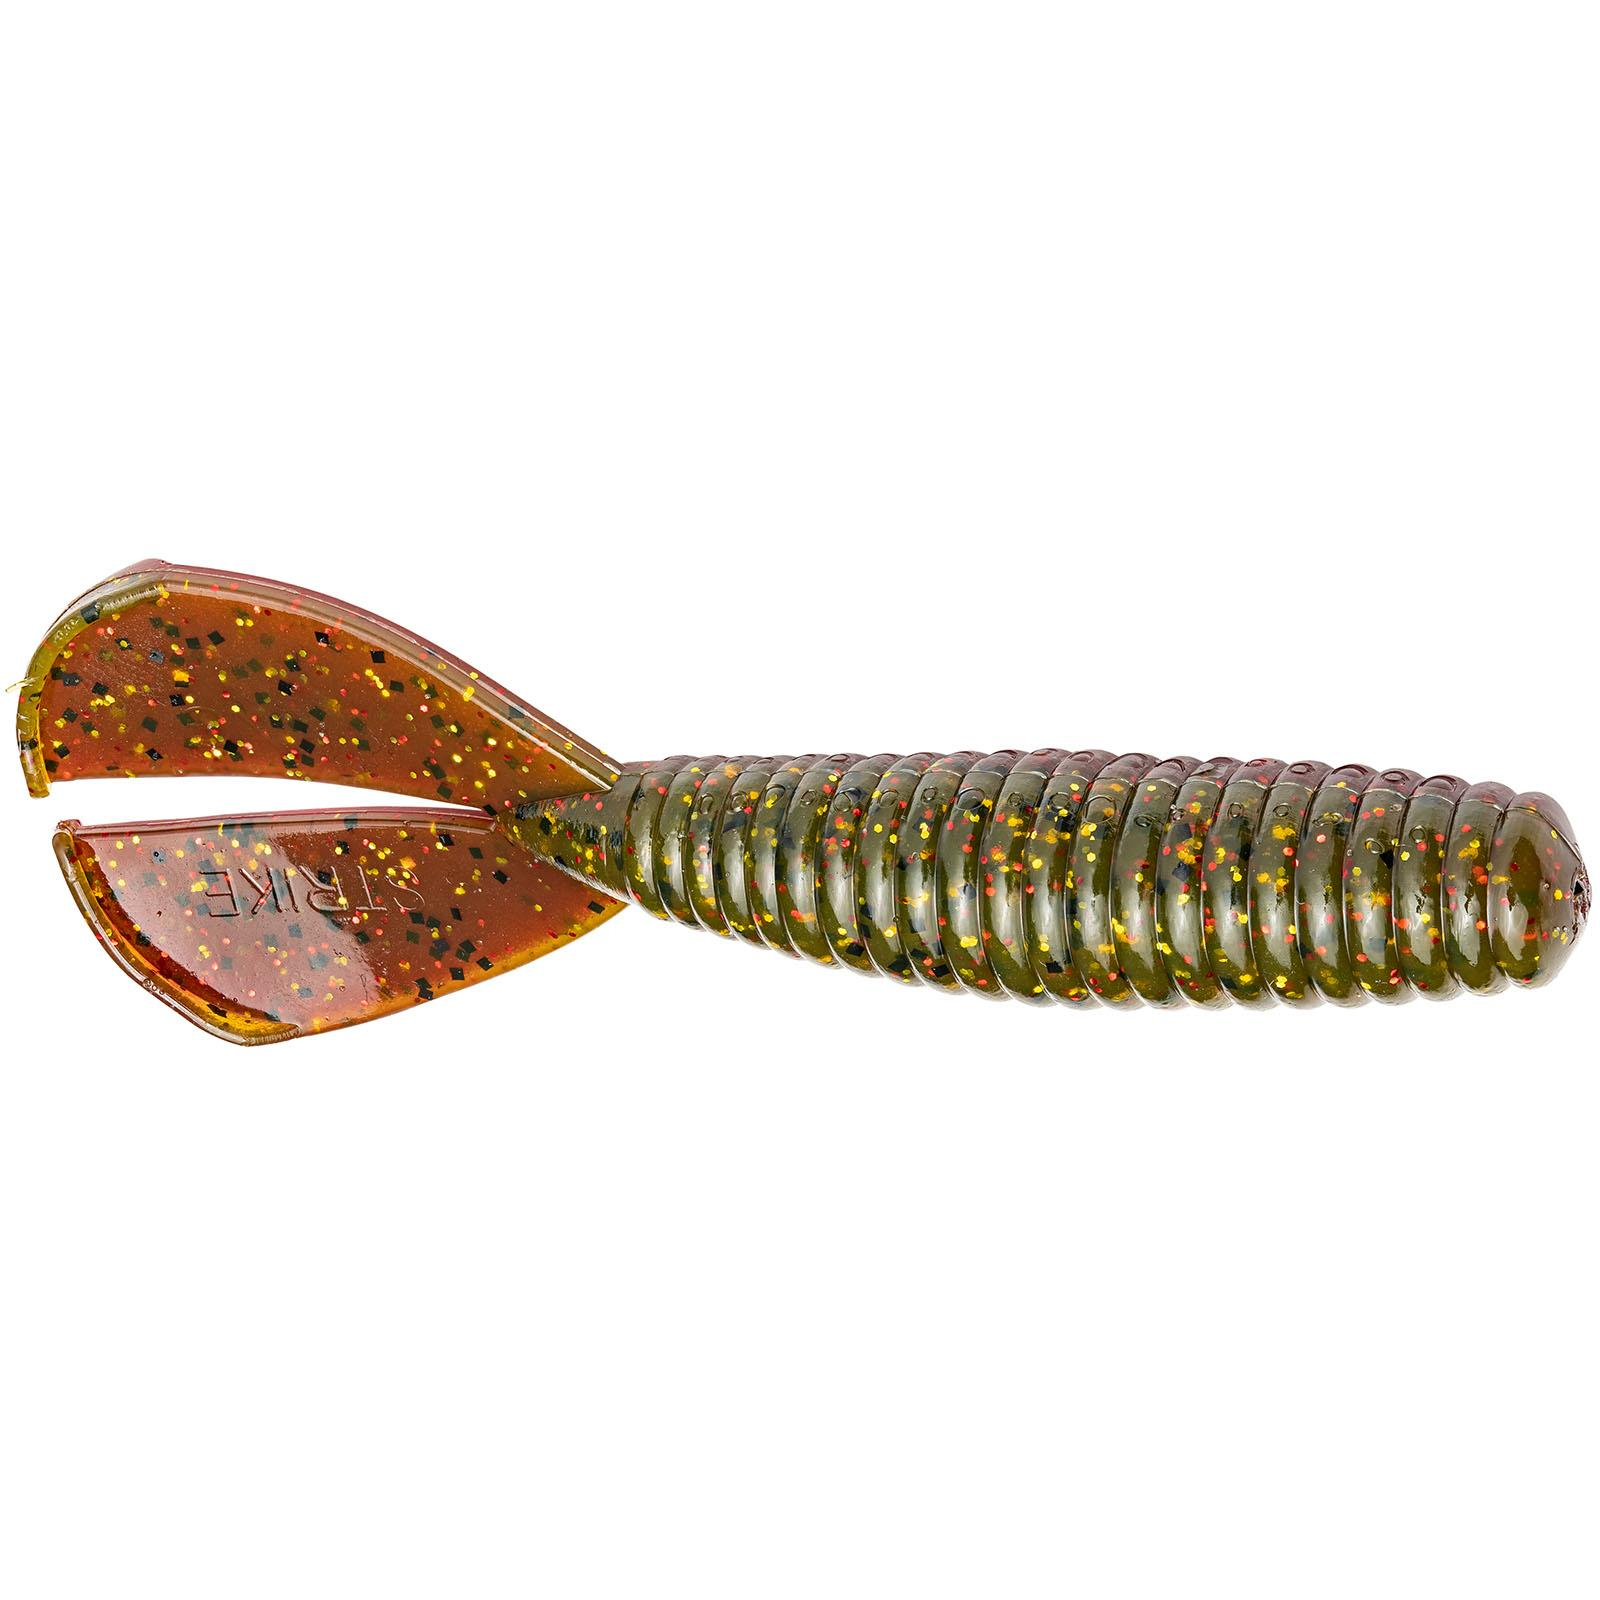 Falcon Lake Craw